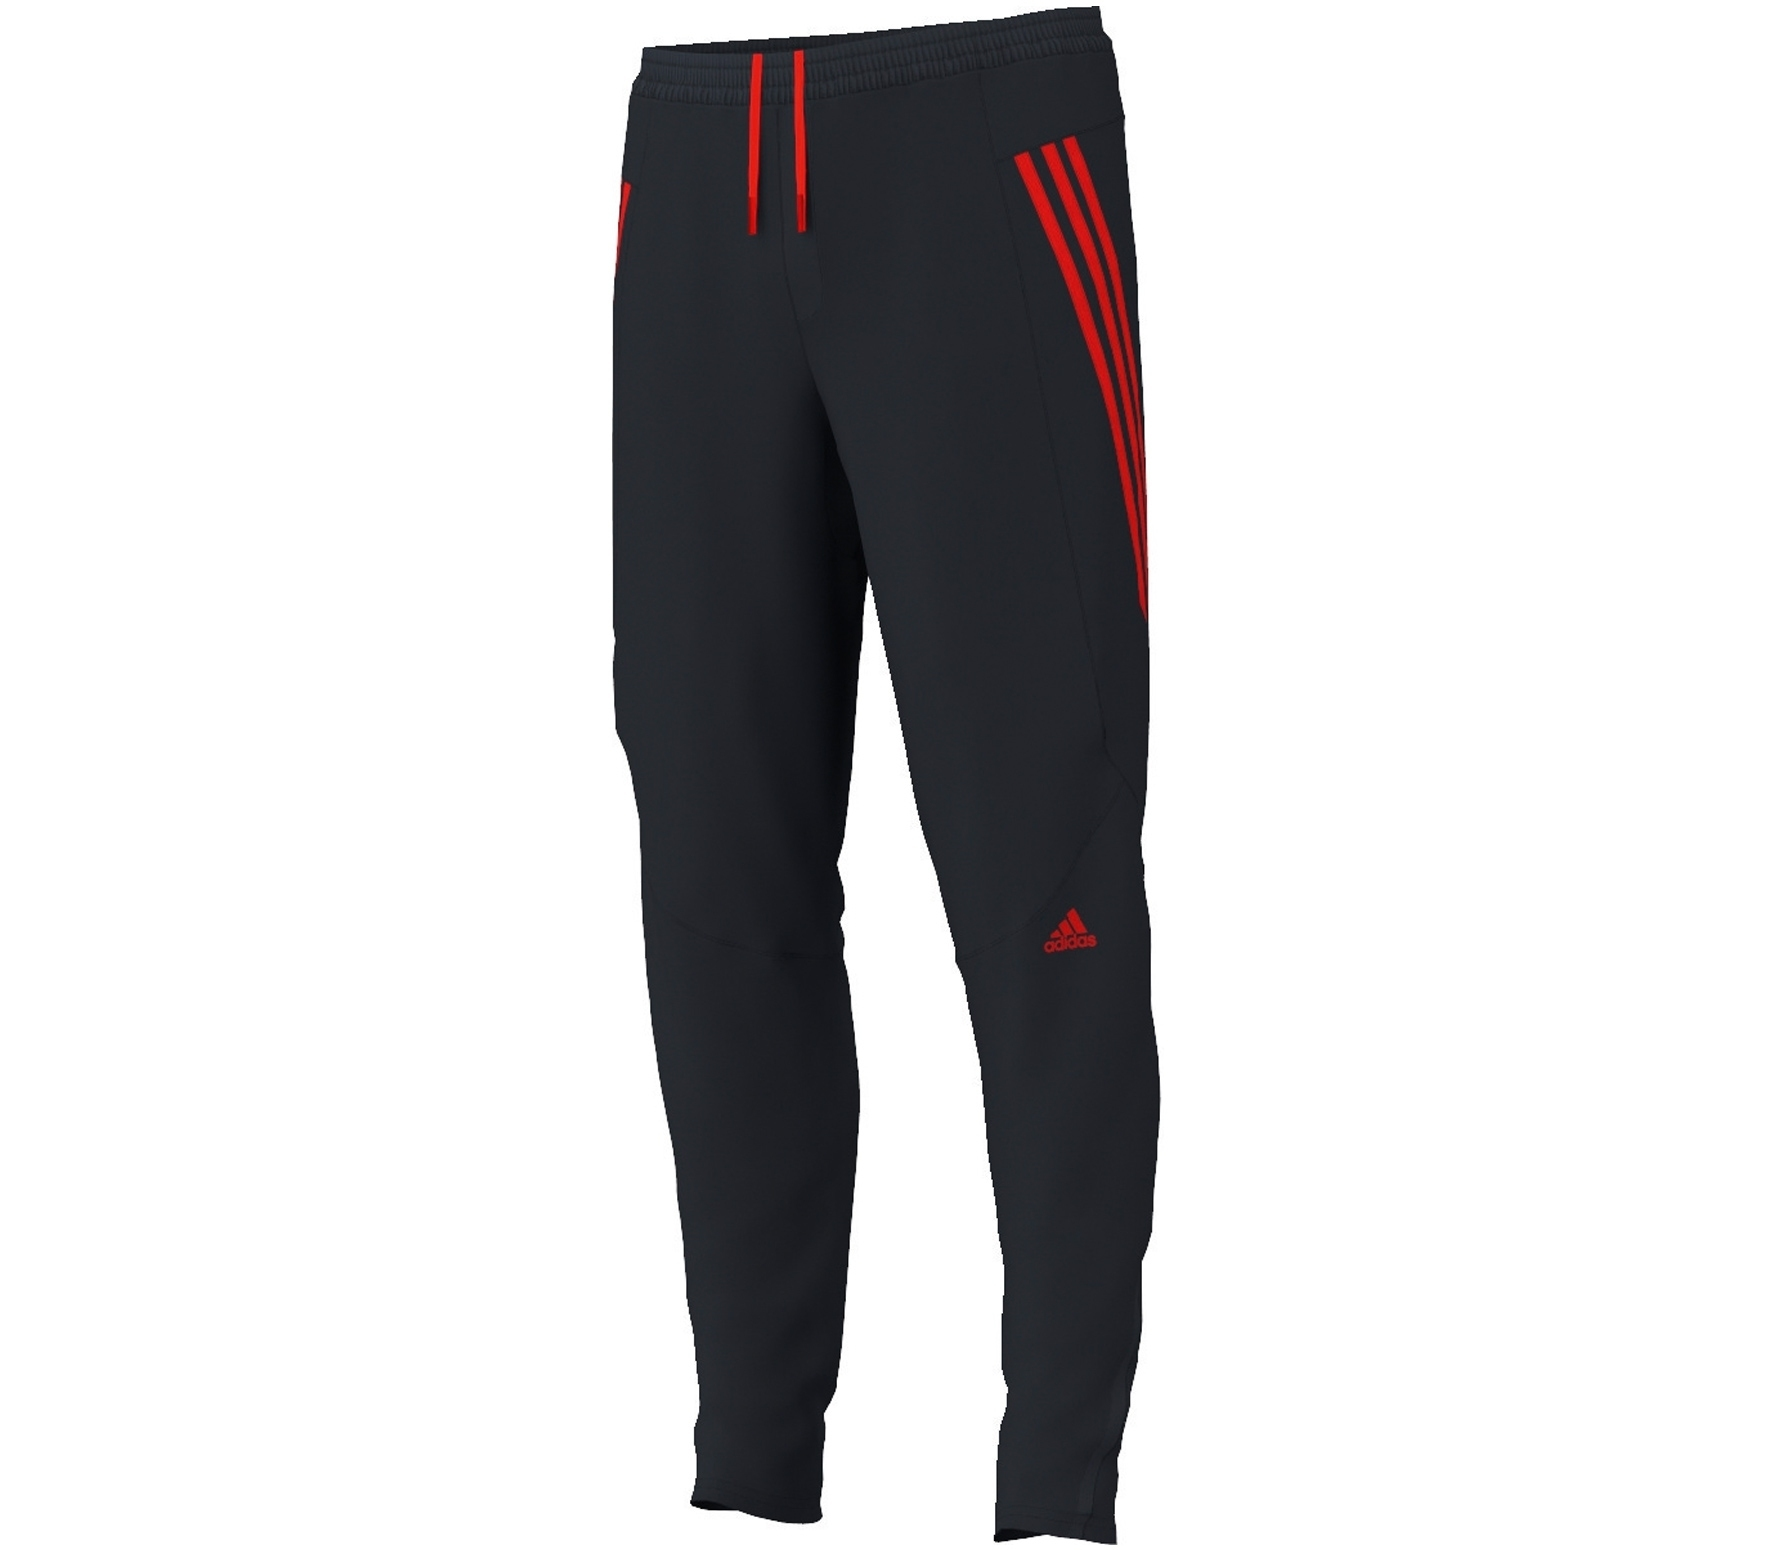 adidas adizero slim pants 2 photo - 1